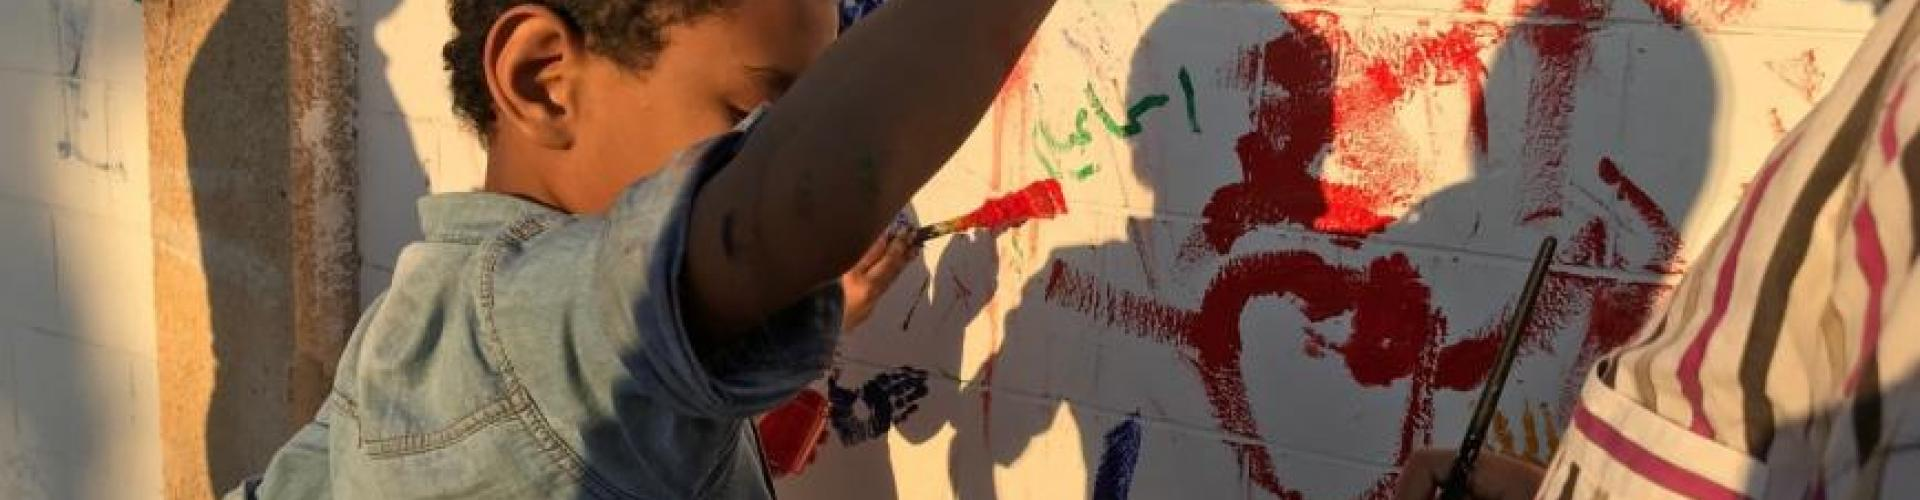 Autistic children in A Global Voice for Autism's Jordan program paint an autism inclusion mural on a wall outside the girls secondary school.